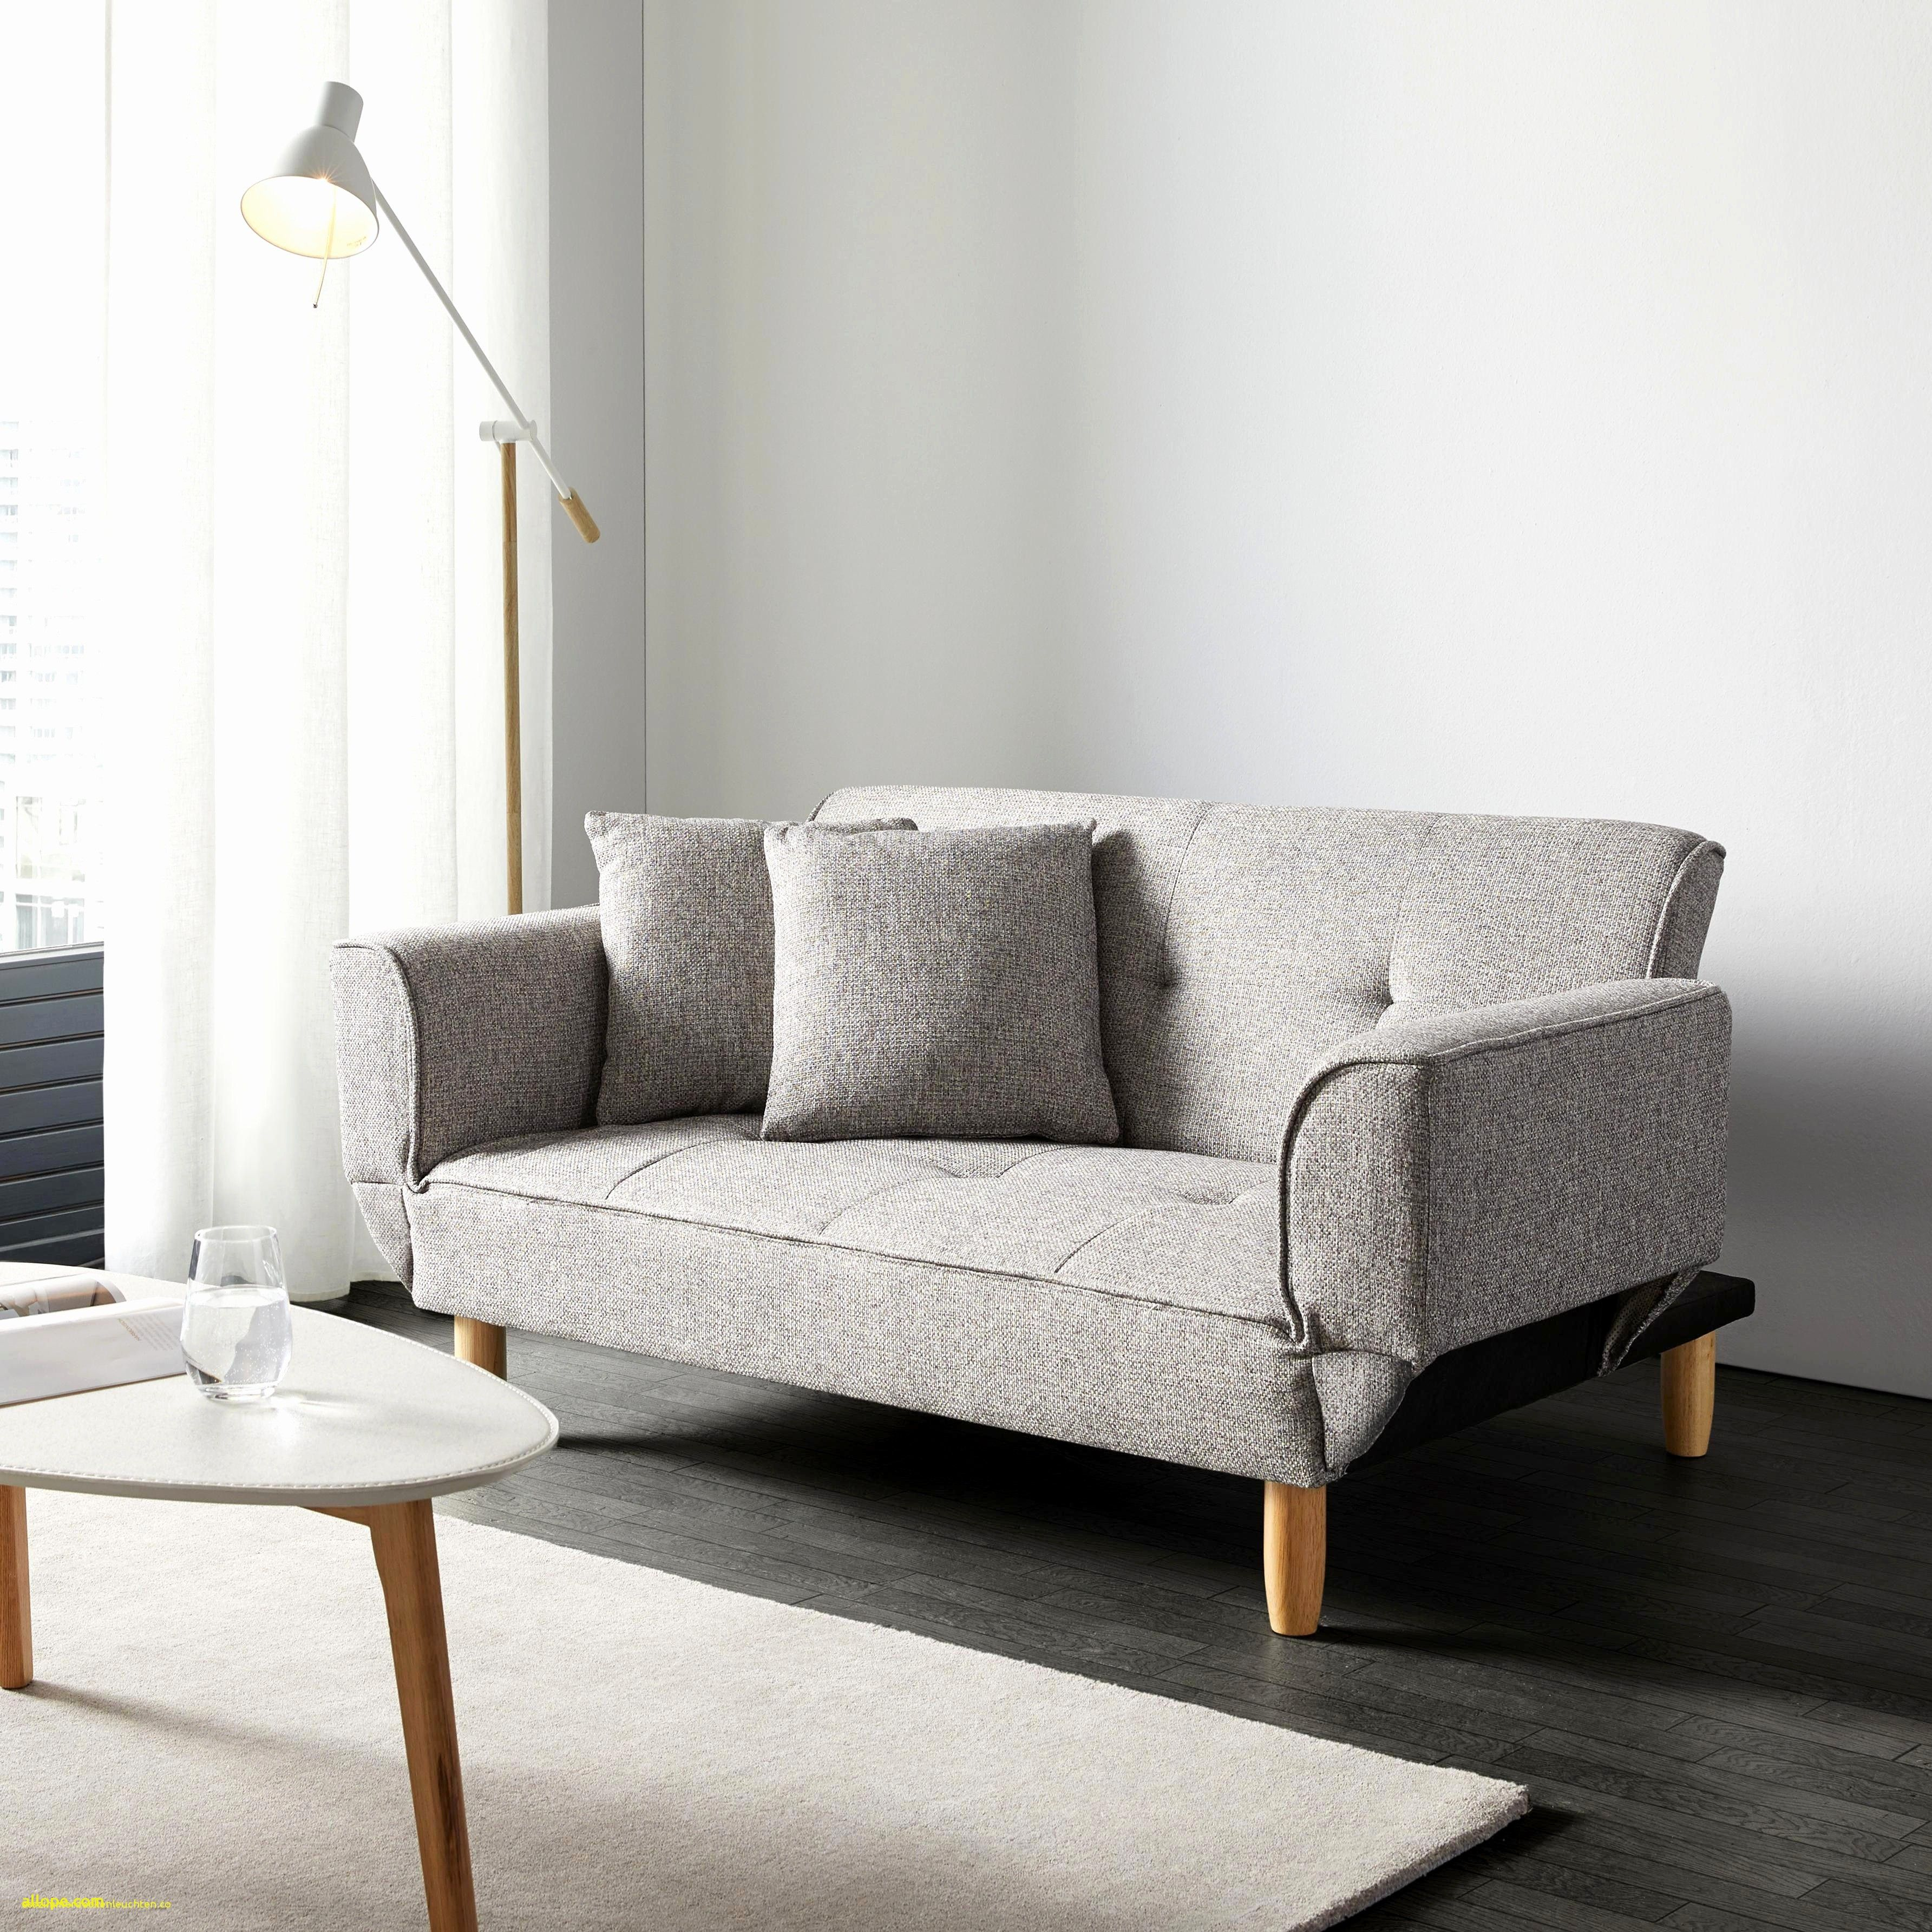 Schlafsofa Daru Frisch Schlaf Sofa Luxus Modern Cheap Living Room